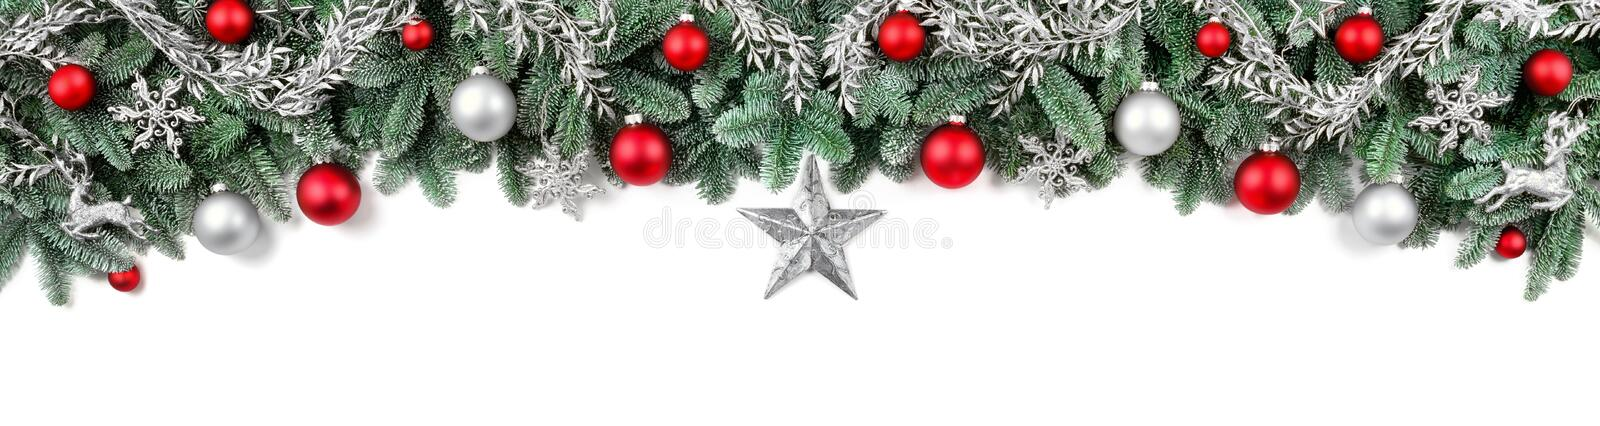 Wide bow-shaped Christmas border. Wide arch-shaped Christmas border isolated on white, composed of fresh fir branches and ornaments in red and silver royalty free stock photography